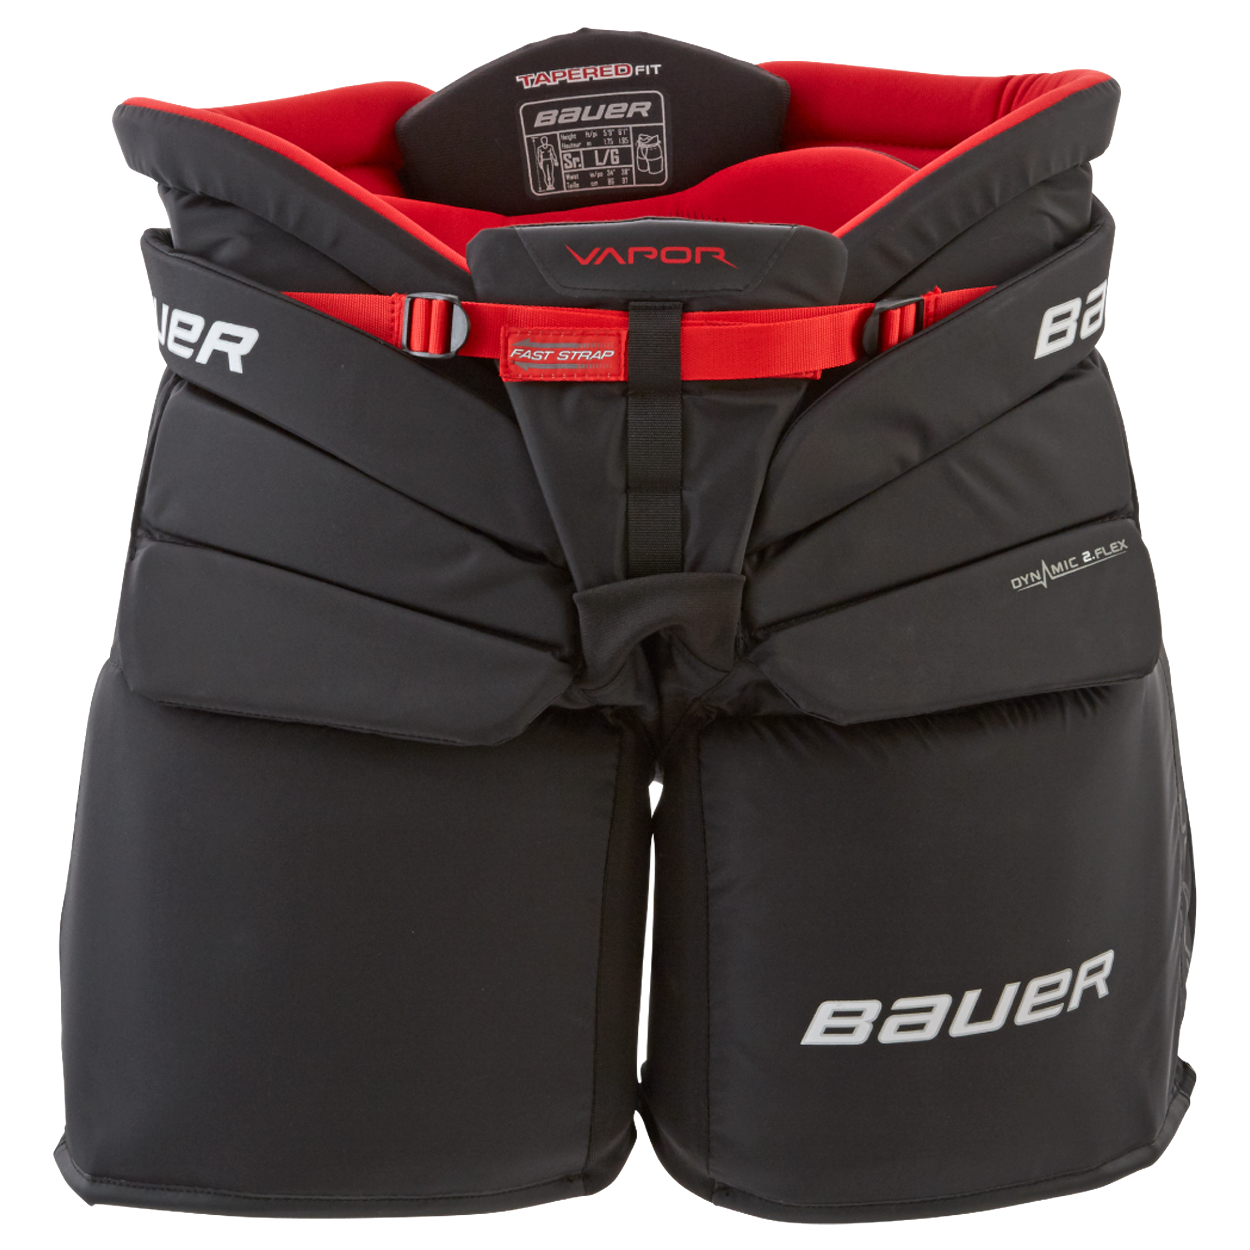 Vapor X2.9 Goalie Pant Intermediate,,Medium